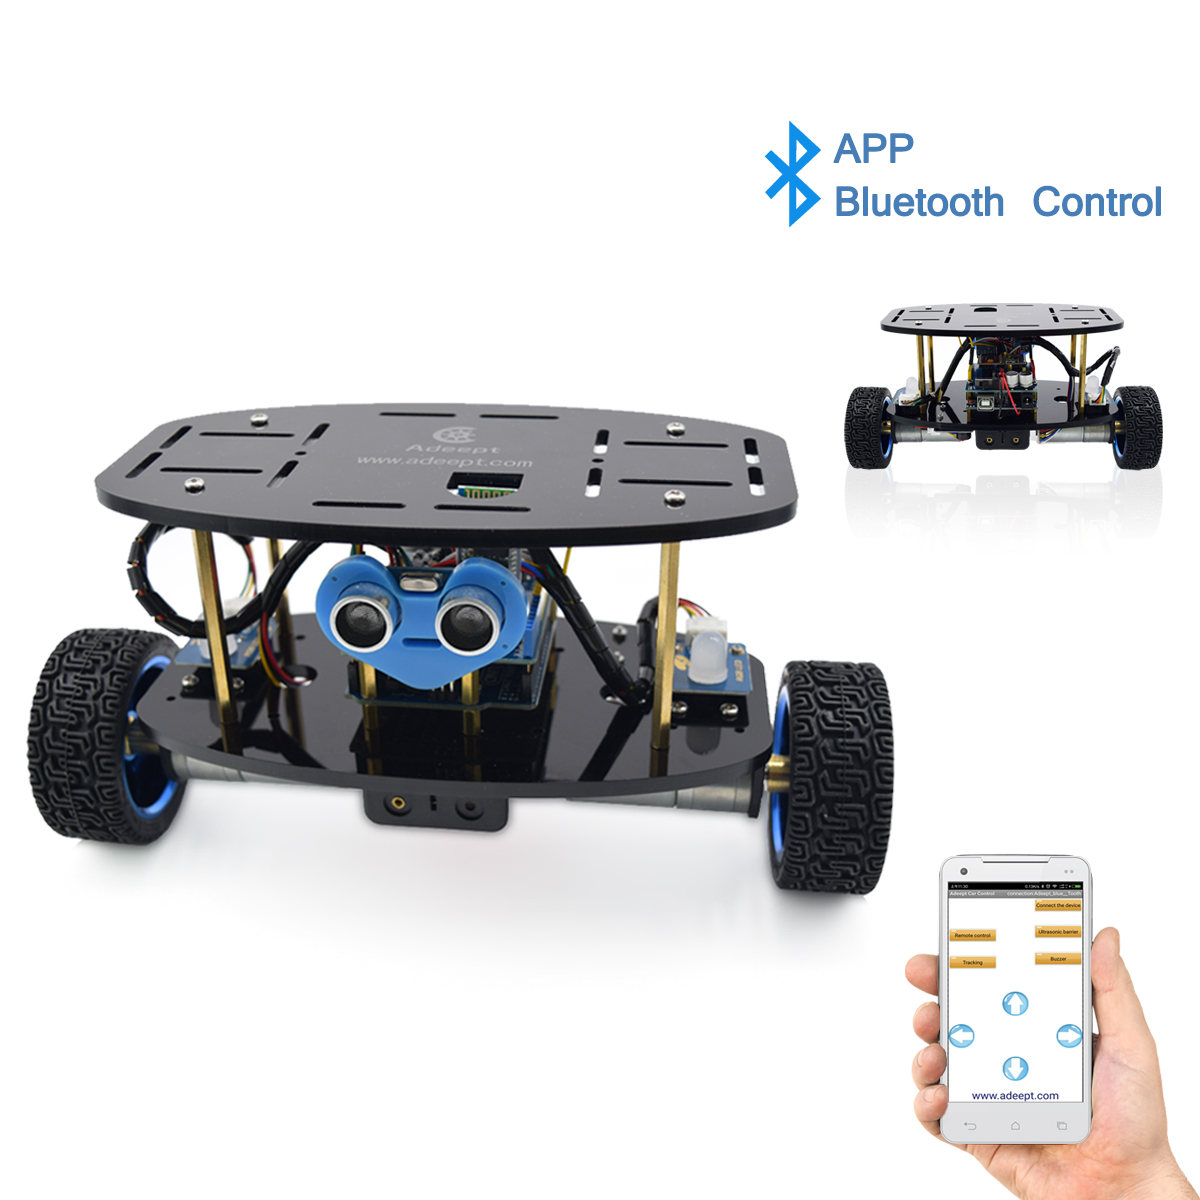 Adeept wheel self balancing upright car robot kit for